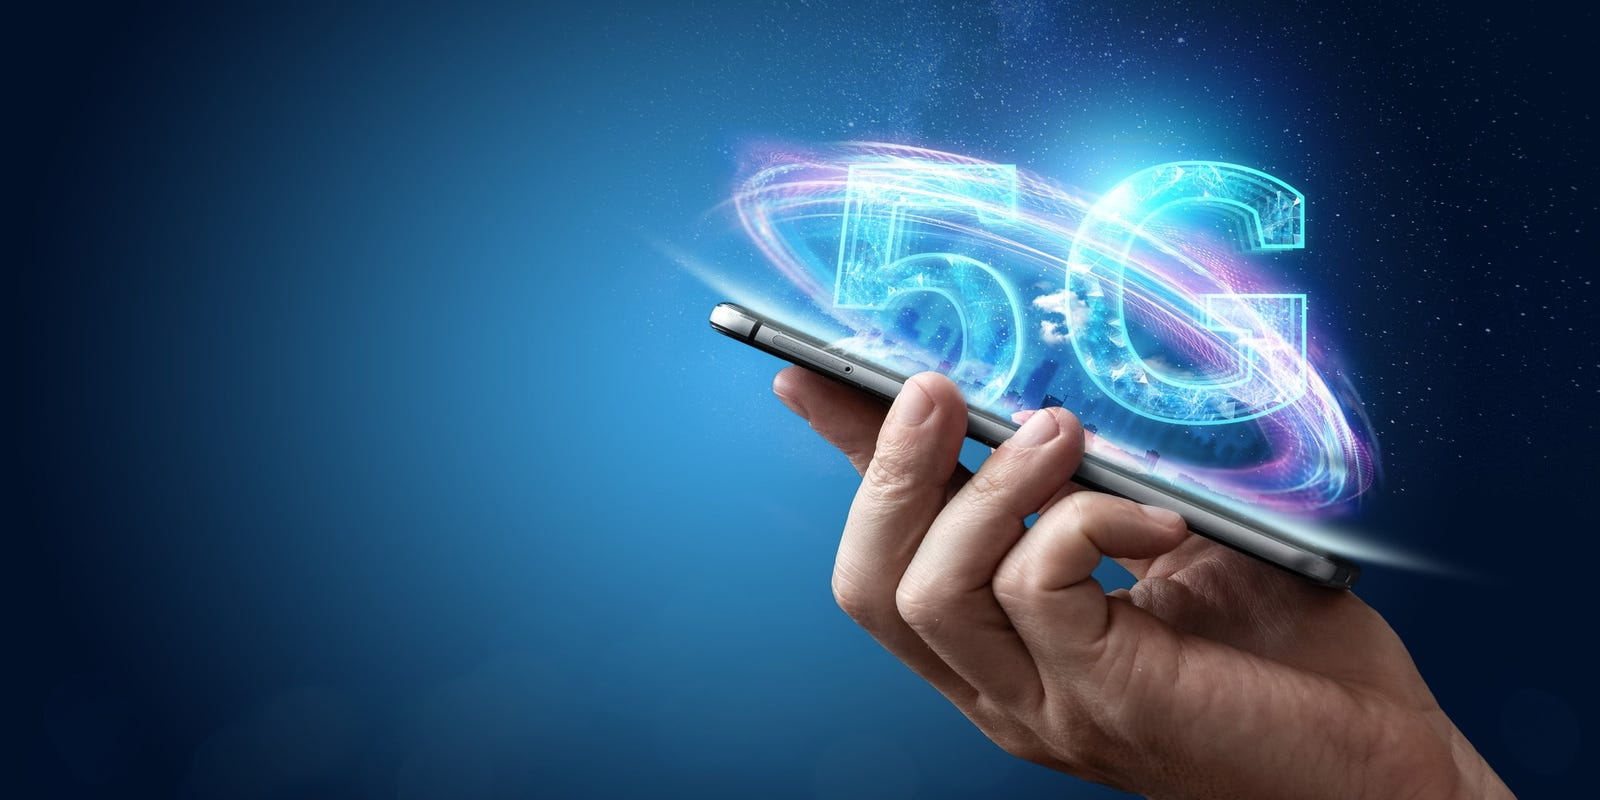 After years of hype, 5G making progress in the USA